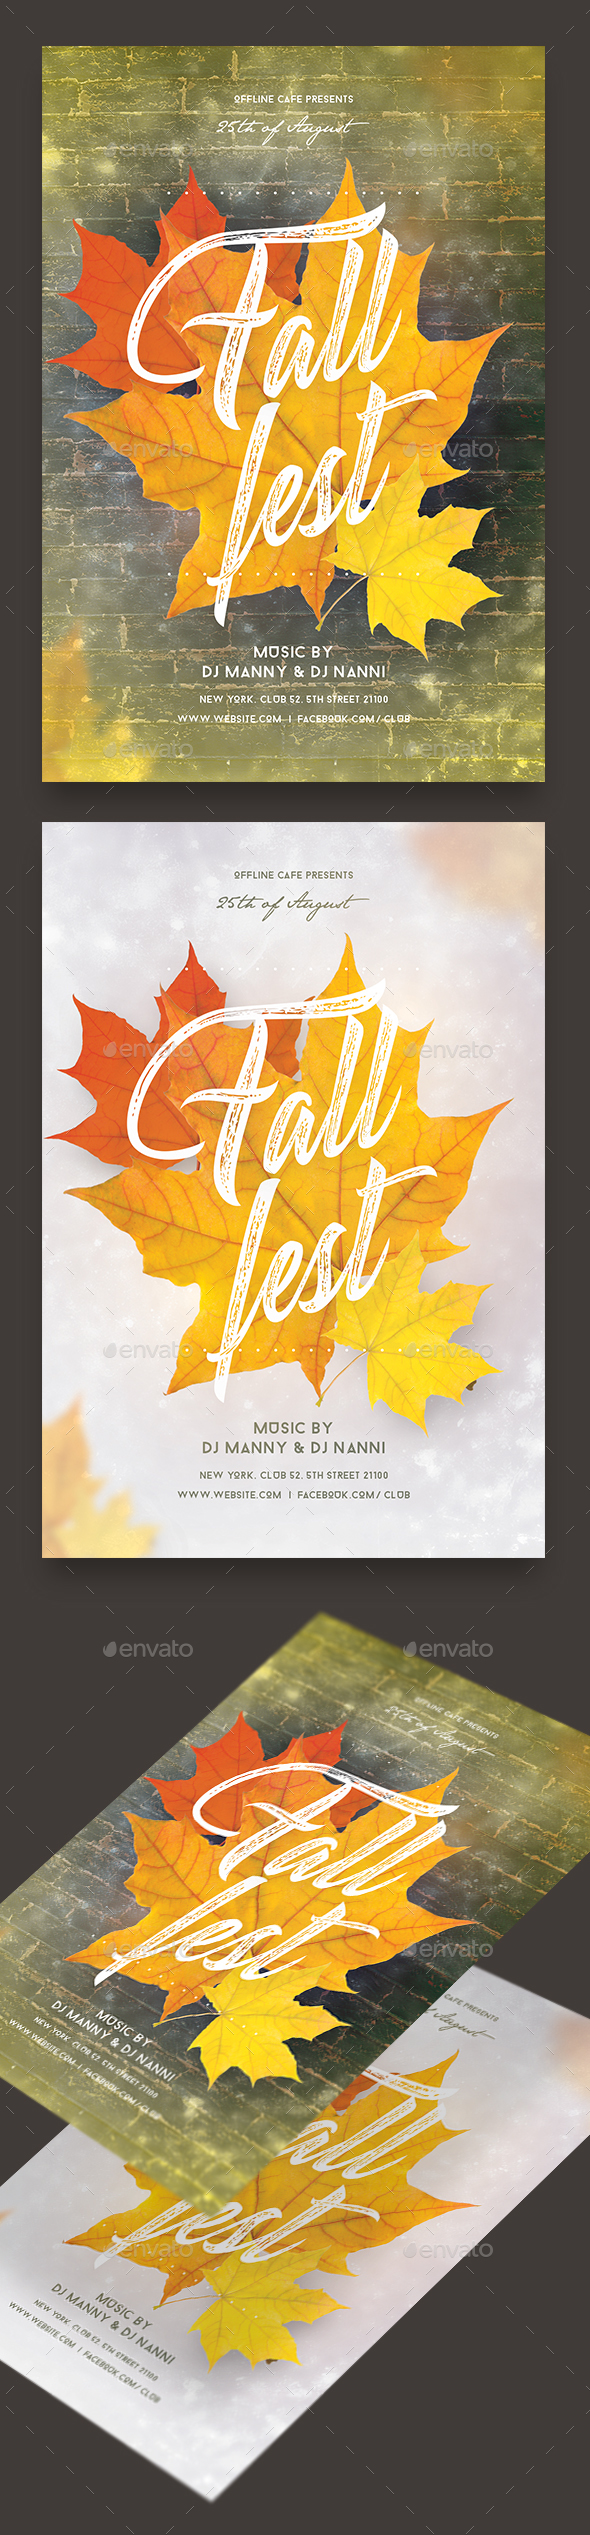 Fall Fest Party Flyer